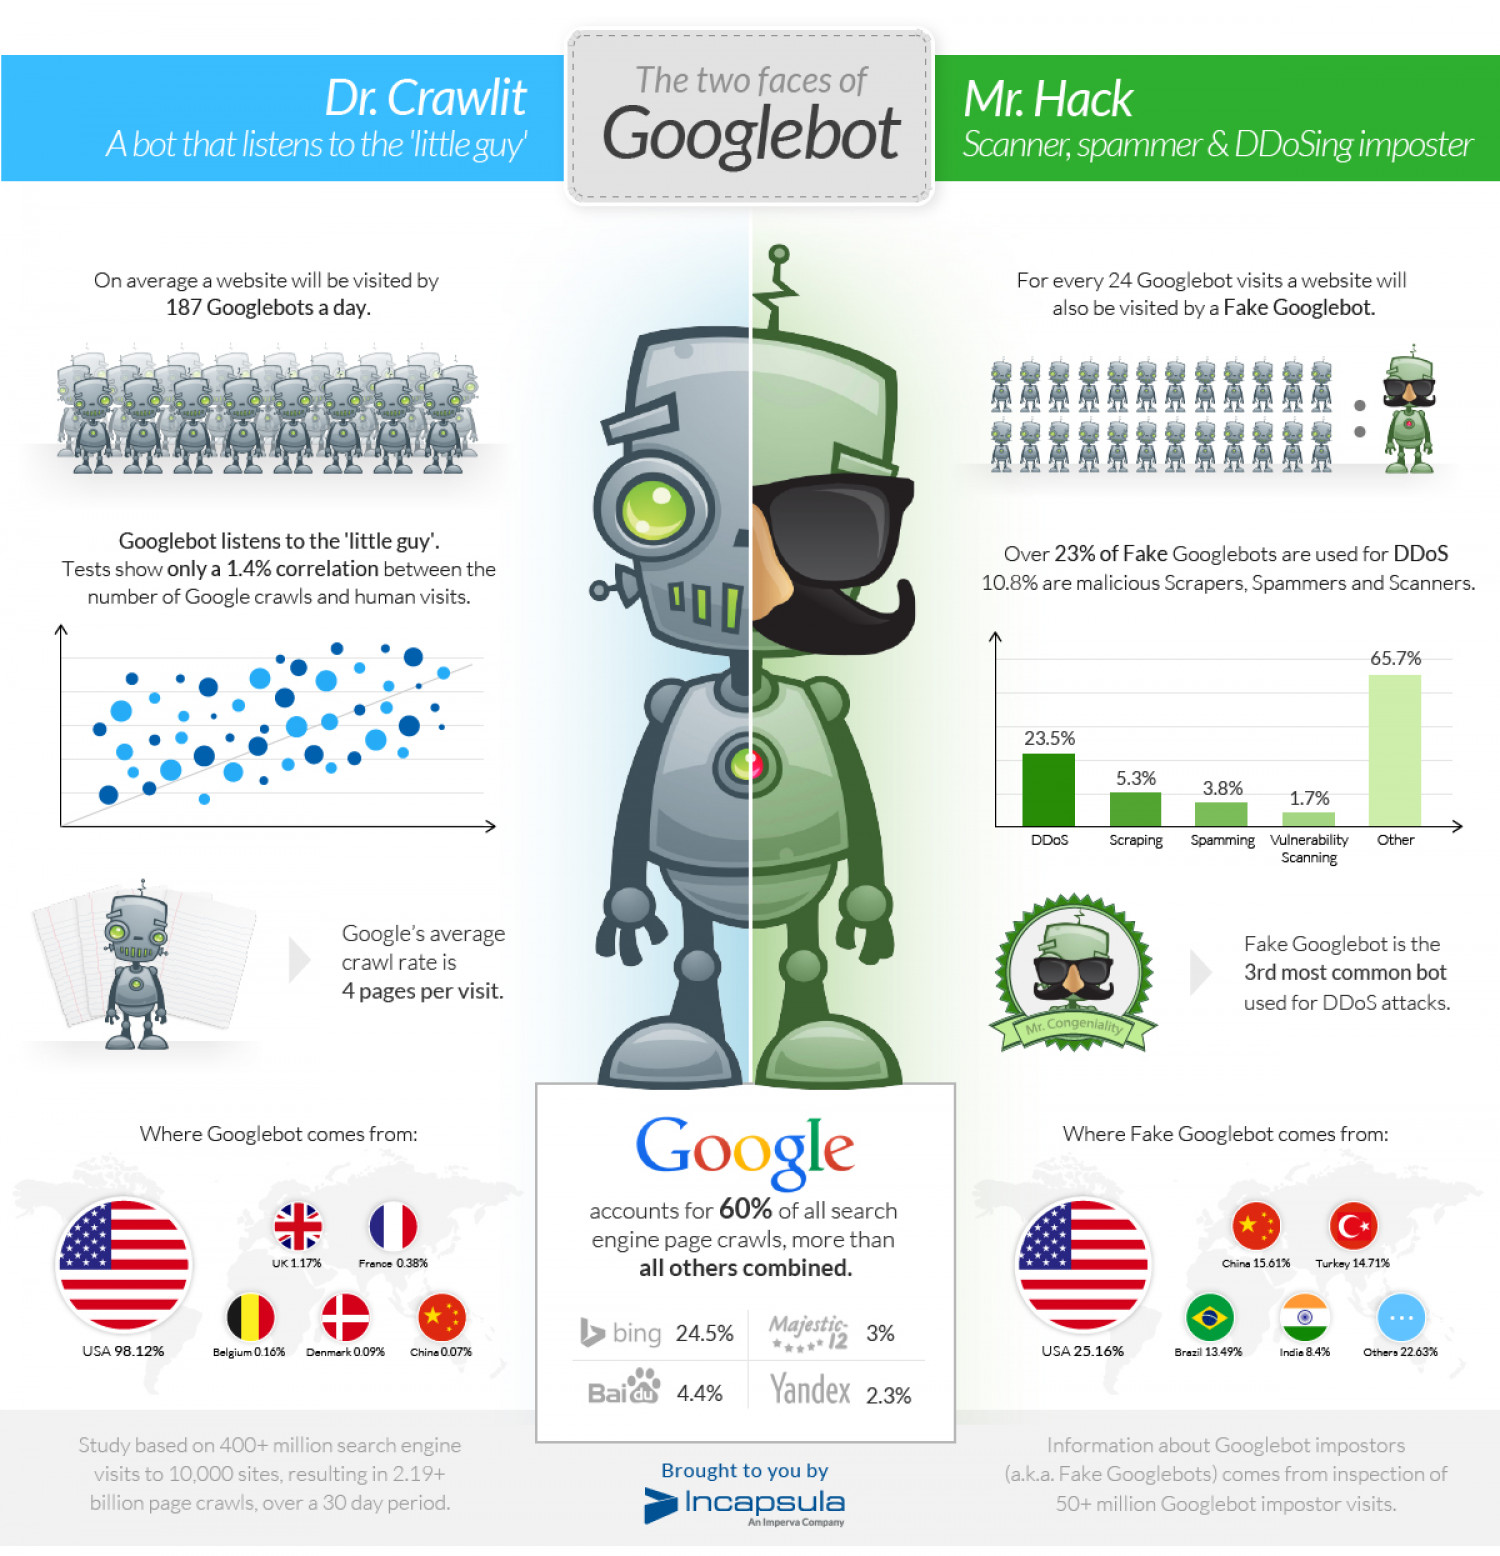 Two Faces of Googlebot Infographic